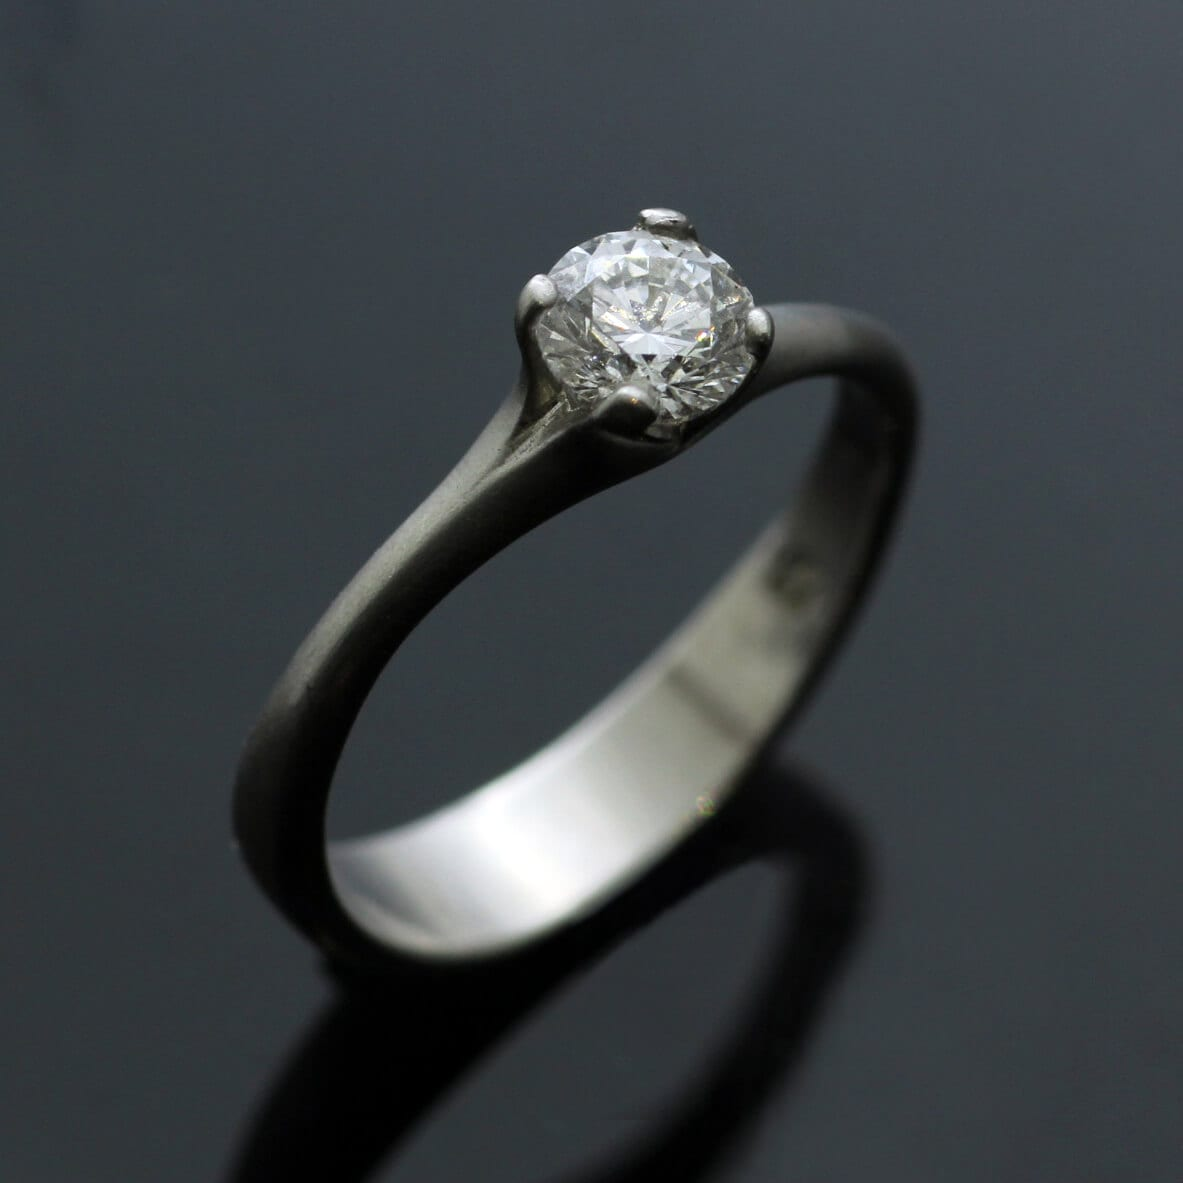 Platinum and Round Brilliant Diamond contemporary engagement ring